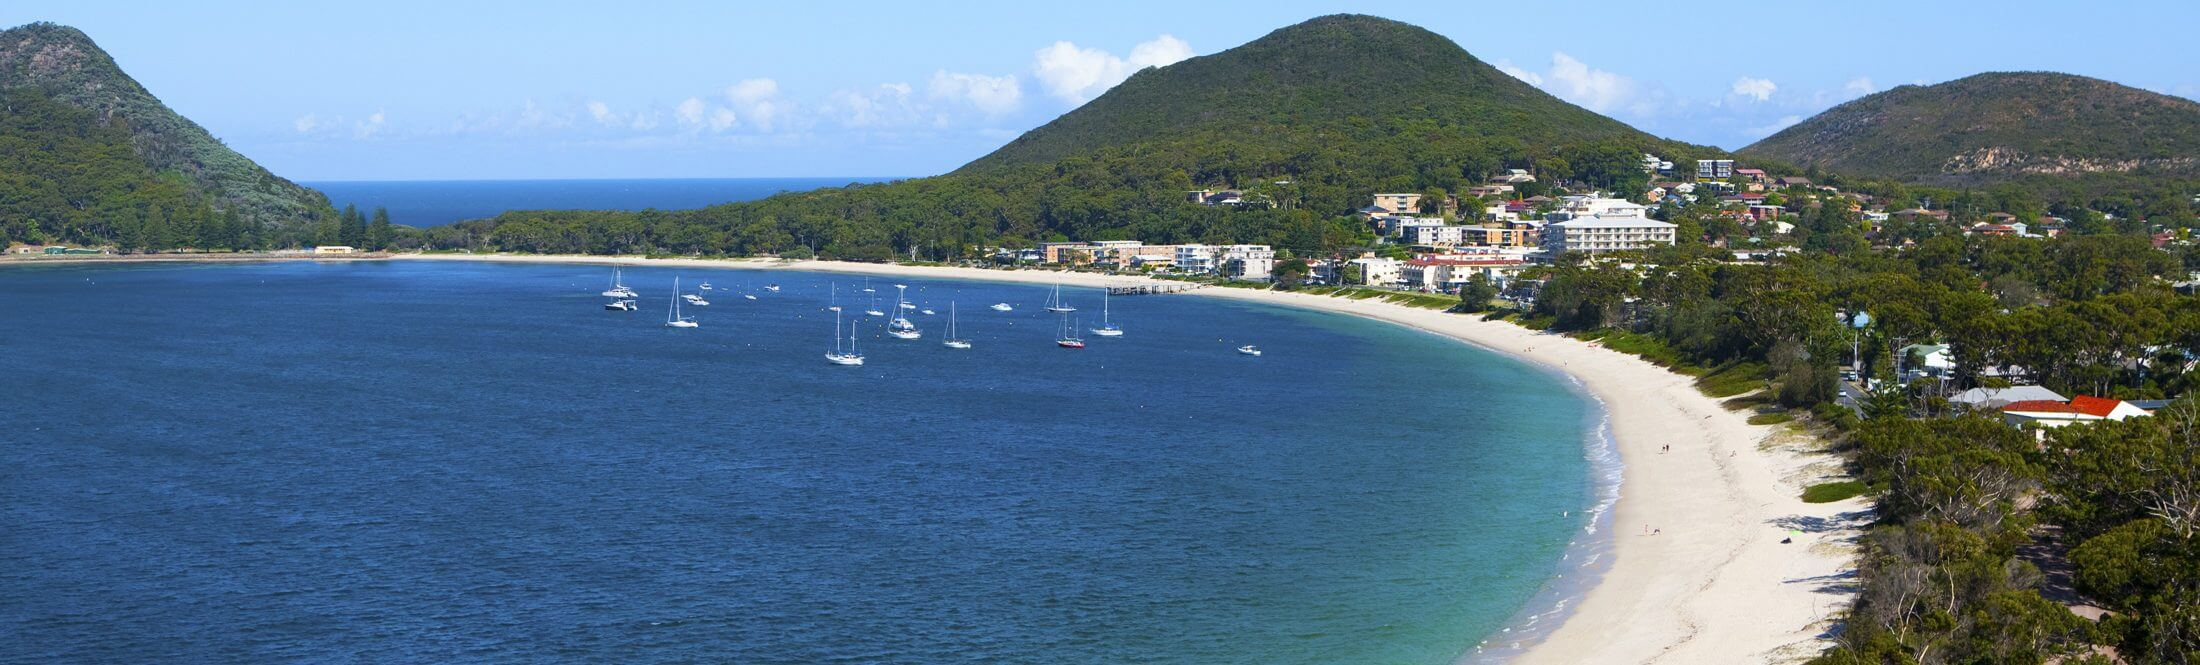 Sydney Private Tours Port Stephens with beautiful beaches